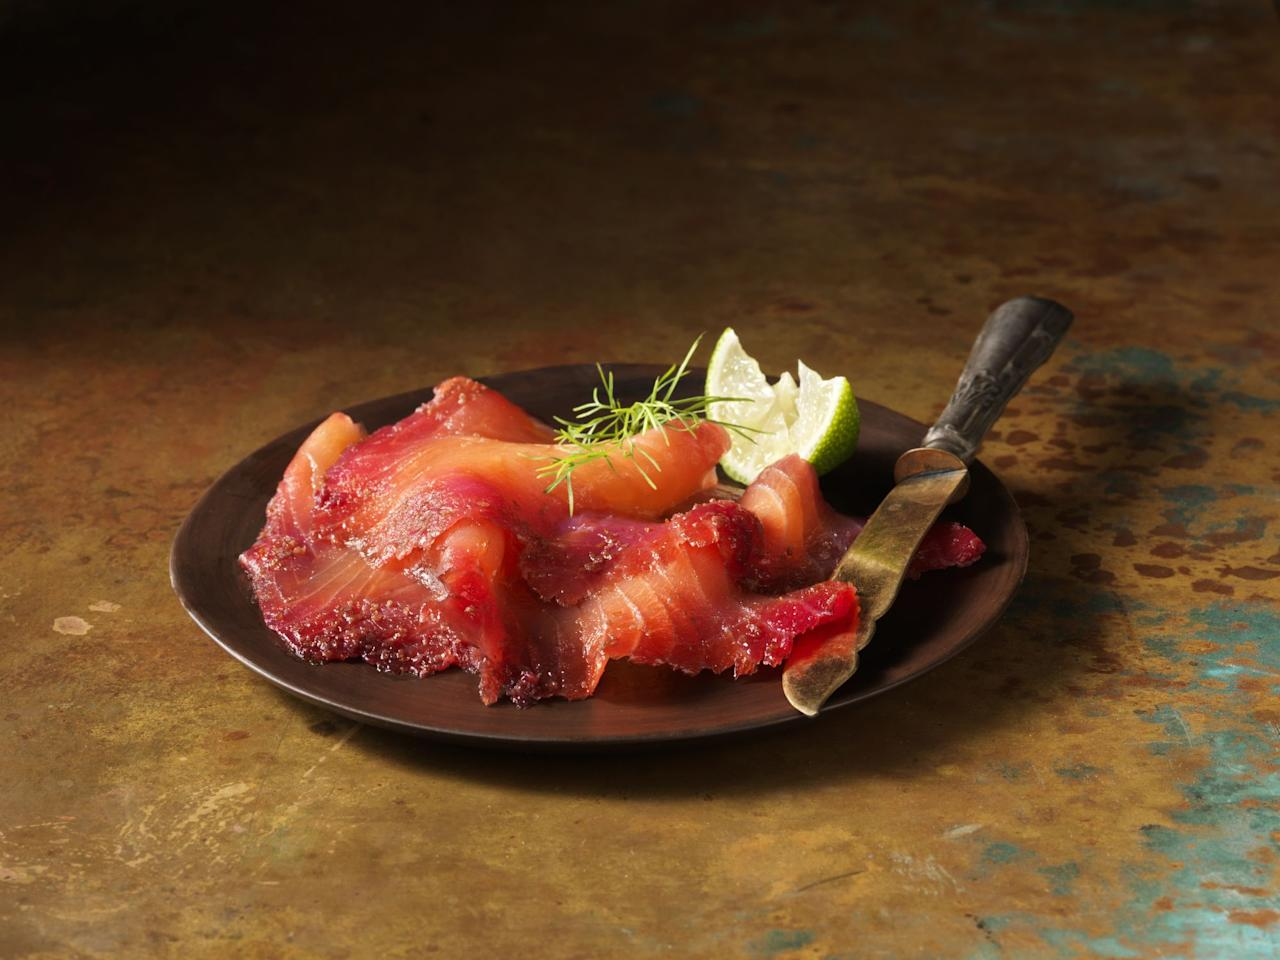 "<p>Once considered a luxury food, good quality smoked salmon is now available from a range of different retailers, from supermarkets to independent suppliers.</p><p>We've seen more and more flavoured options enter the market this year too, as smoked salmon is the perfect carrier for trendy flavours such as <a href=""https://www.goodhousekeeping.com/uk/food/a26896669/gin/"" target=""_blank"">gin and tonic</a> or single malt Scotch whisky. And these innovative alternatives can be used in plenty of <a href=""https://www.goodhousekeeping.com/uk/food/recipes/g544471/best-salmon-dishes/"">dishes</a> over the festive period.</p><p>Try serving on a <a href=""https://www.goodhousekeeping.com/uk/food/recipes/a565507/giant-salmon-blinis/"">blini</a> or toasted crumpet with some crème fraîche and dill for a quick and simple canapé - don't forget to serve with some <a href=""https://www.goodhousekeeping.com/uk/food/food-reviews/g23926133/best-champagne-christmas/"">champagne</a>! Alternatively, mix your salmon into a creamy <a href=""https://www.goodhousekeeping.com/uk/food/recipes/a535019/warm-salmon-and-potato-salad/"">potato salad</a> or <a href=""https://www.goodhousekeeping.com/uk/food/recipes/a552162/salmon-and-prawn-linguine/"">pasta dish</a>. For your Christmas breakfast, classic <a href=""https://www.goodhousekeeping.com/uk/food/a531999/how-to-make-scrambled-eggs/"">scrambled eggs</a> can be elevated with some torn <a href=""https://www.goodhousekeeping.com/uk/food/food-reviews/g23888822/best-smoked-salmon-christmas/"">smoked salmon</a> over the top, or you can serve it as a simple starter before the <a href=""https://www.goodhousekeeping.com/uk/food/food-reviews/g23867629/the-best-roast-turkey-for-your-christmas-dinner/"">turkey</a>.  </p><p>In our taste tests, our panel nibbled on everything from colourful beetroot-dyed slices to salmon infused with gin to find the most eye-catching and delicious options to serve this Christmas. But which brand has the winning salmon? Read our verdict below...</p><h2 class=""body-h2"">How we test</h2><p>Our consumer panel tried each smoked salmon and assessed them on appearance, aroma, flavour and texture. We were looking for a well-integrated, innovative flavour that enhanced the overall taste of the smoked salmon.<strong></strong><br></p>"